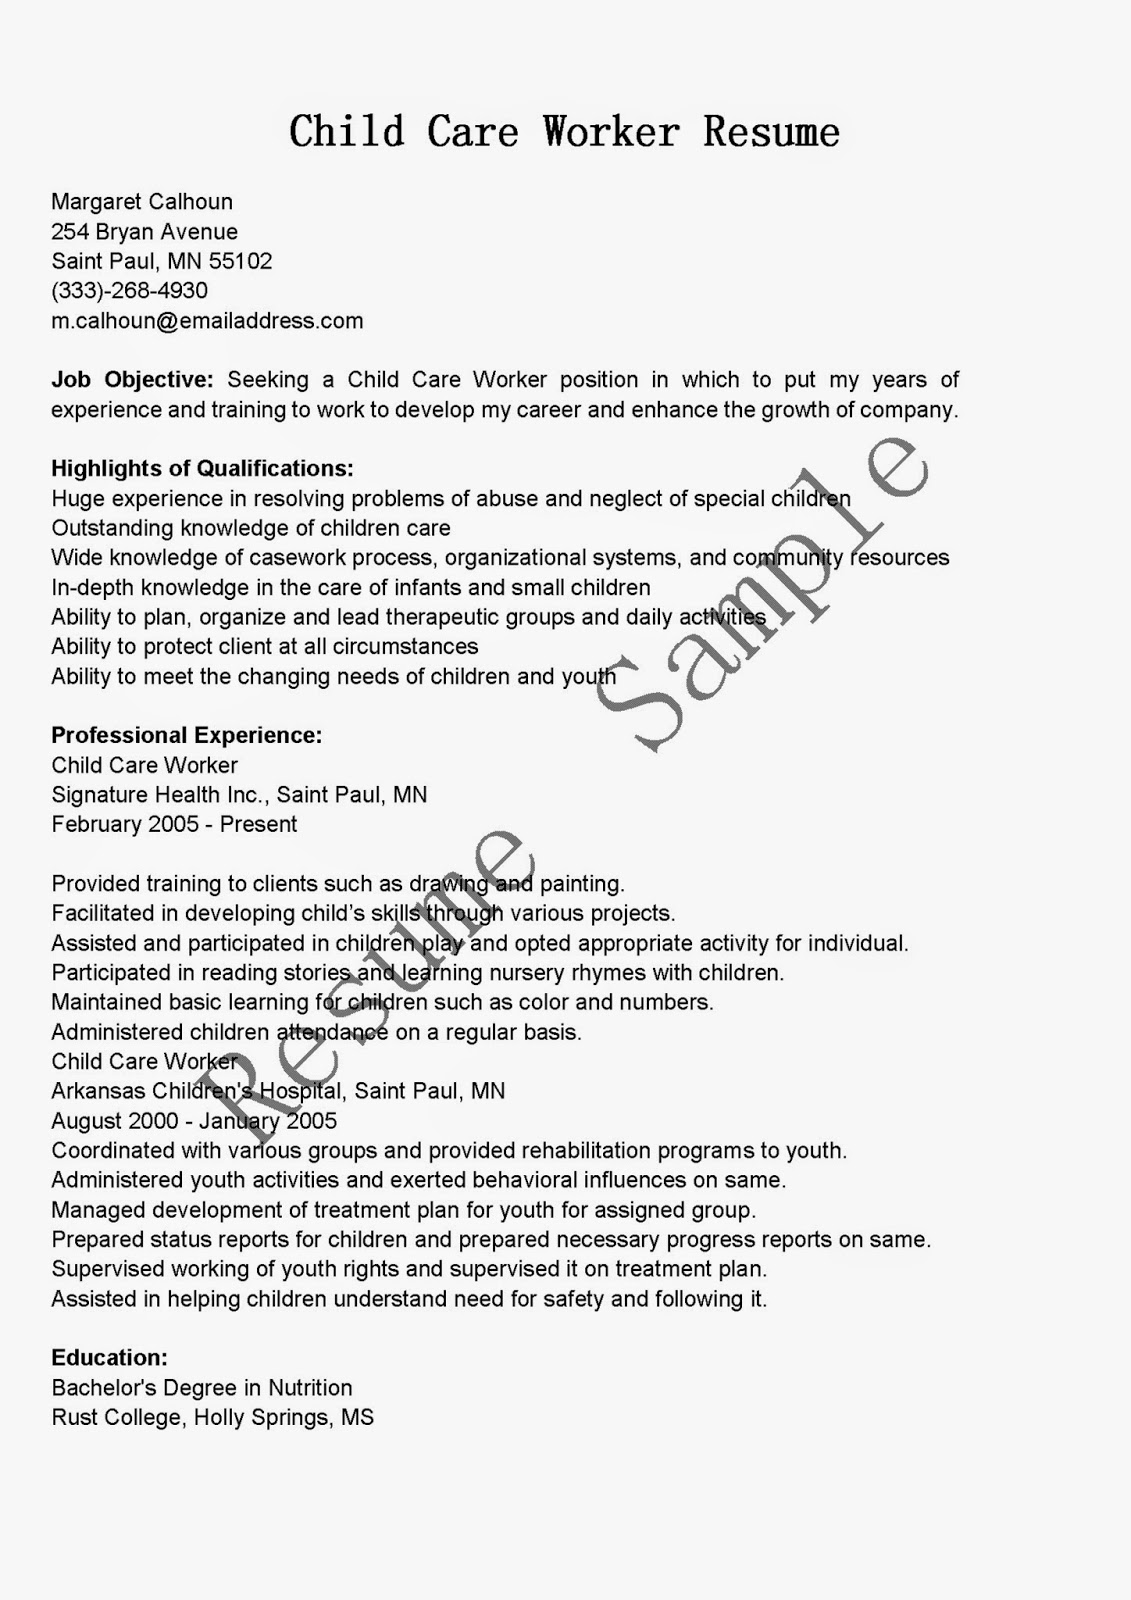 Resume samples child care worker resume sample for Sample resume for personal care worker